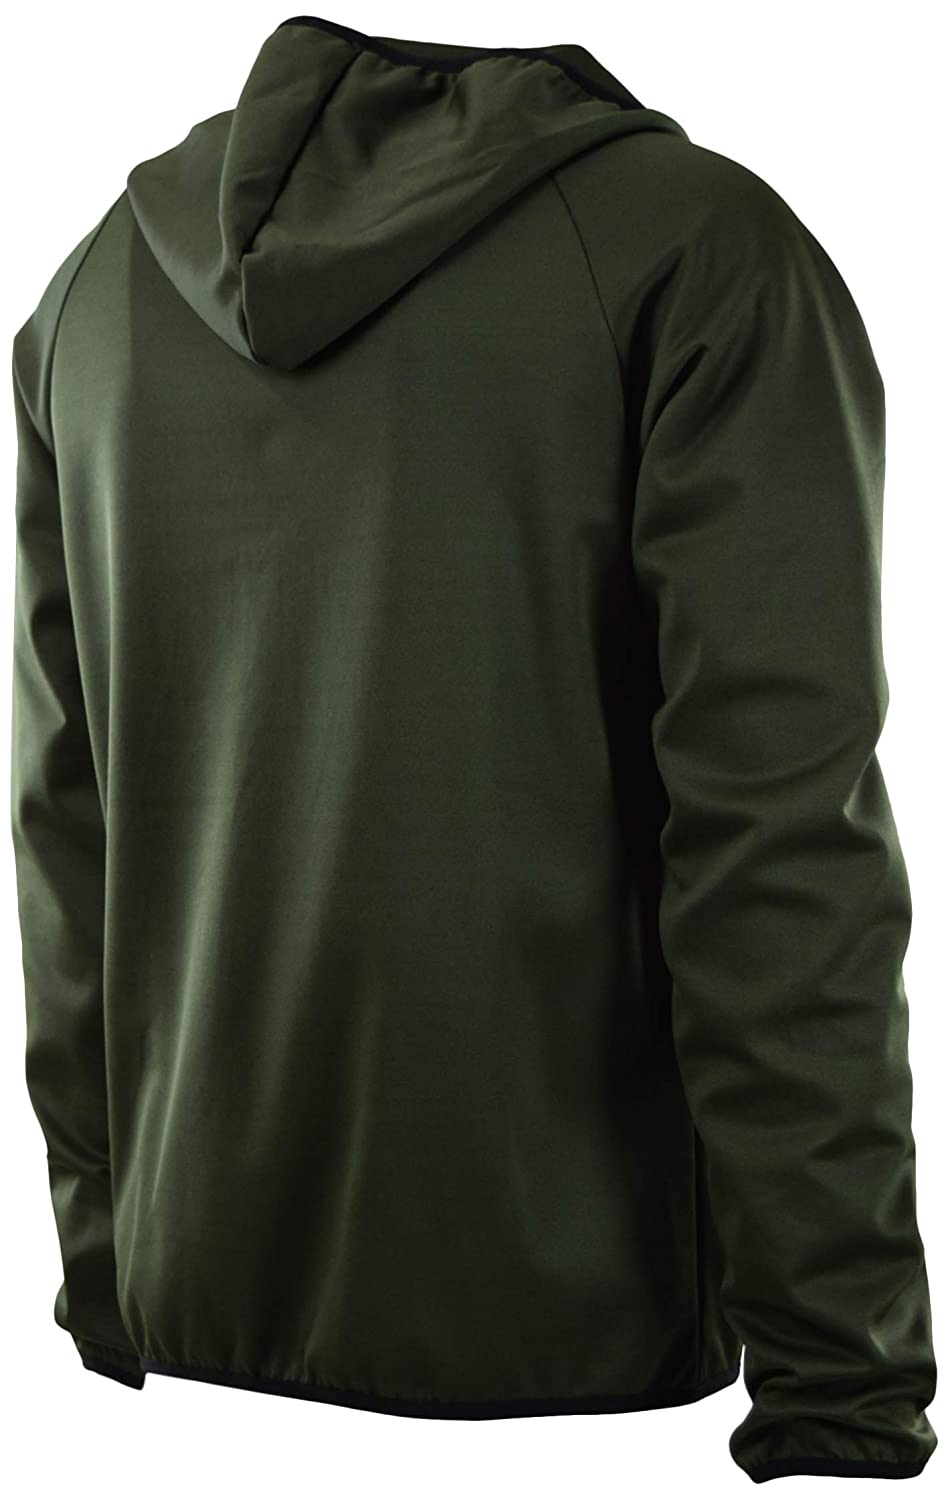 d36aef3eb6ab ChoiceApparel Mens Full Zip Up Warm Up Track Jacket at Amazon Men s  Clothing store